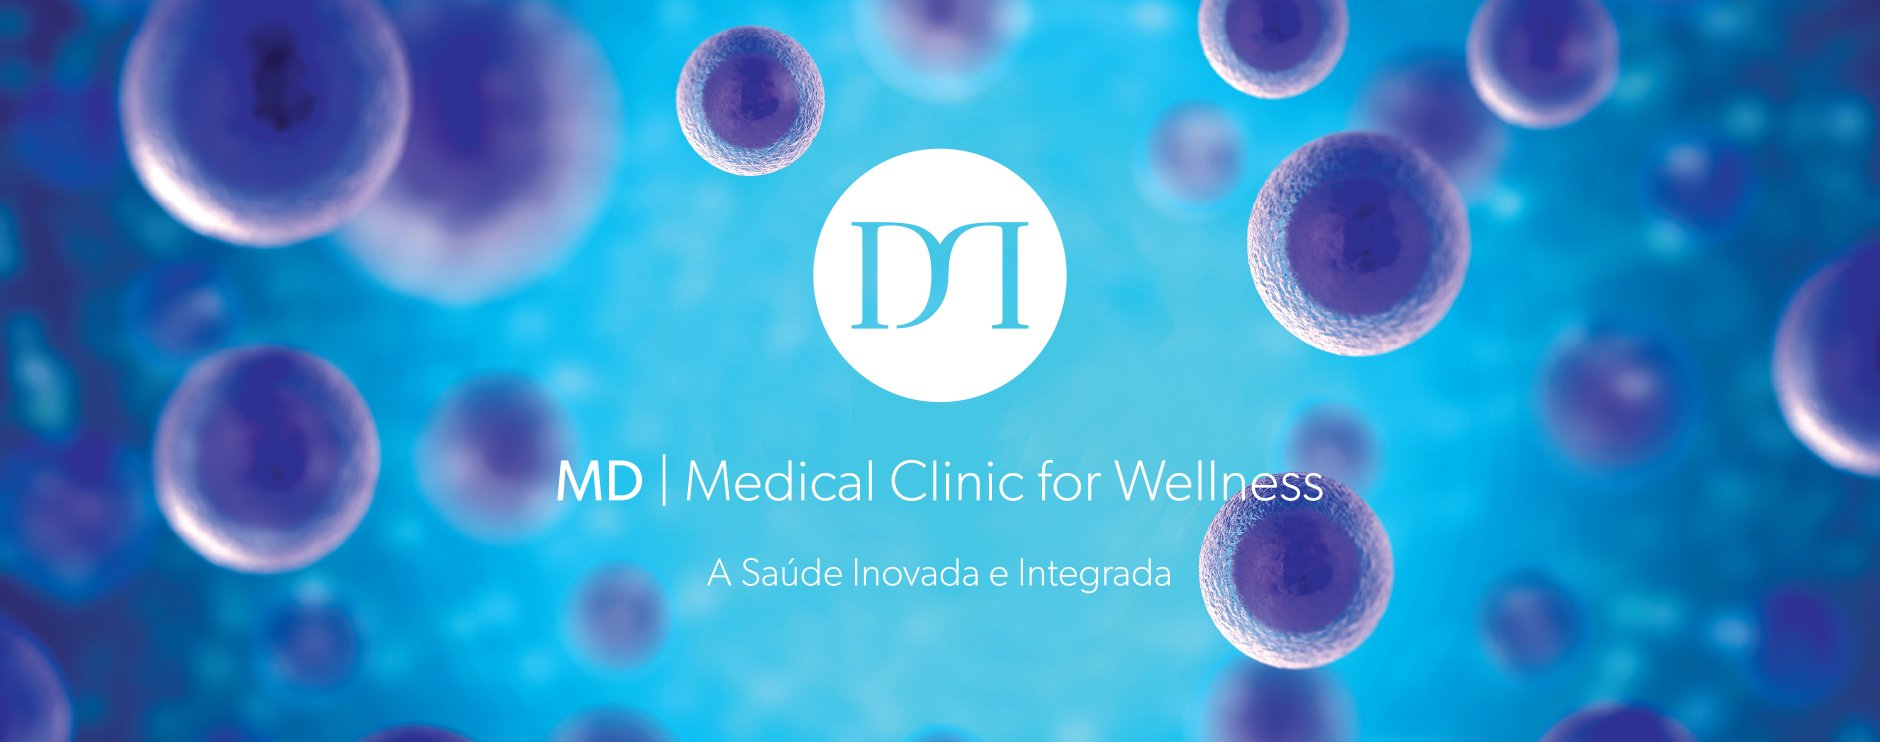 Medical Clinic for Wellness